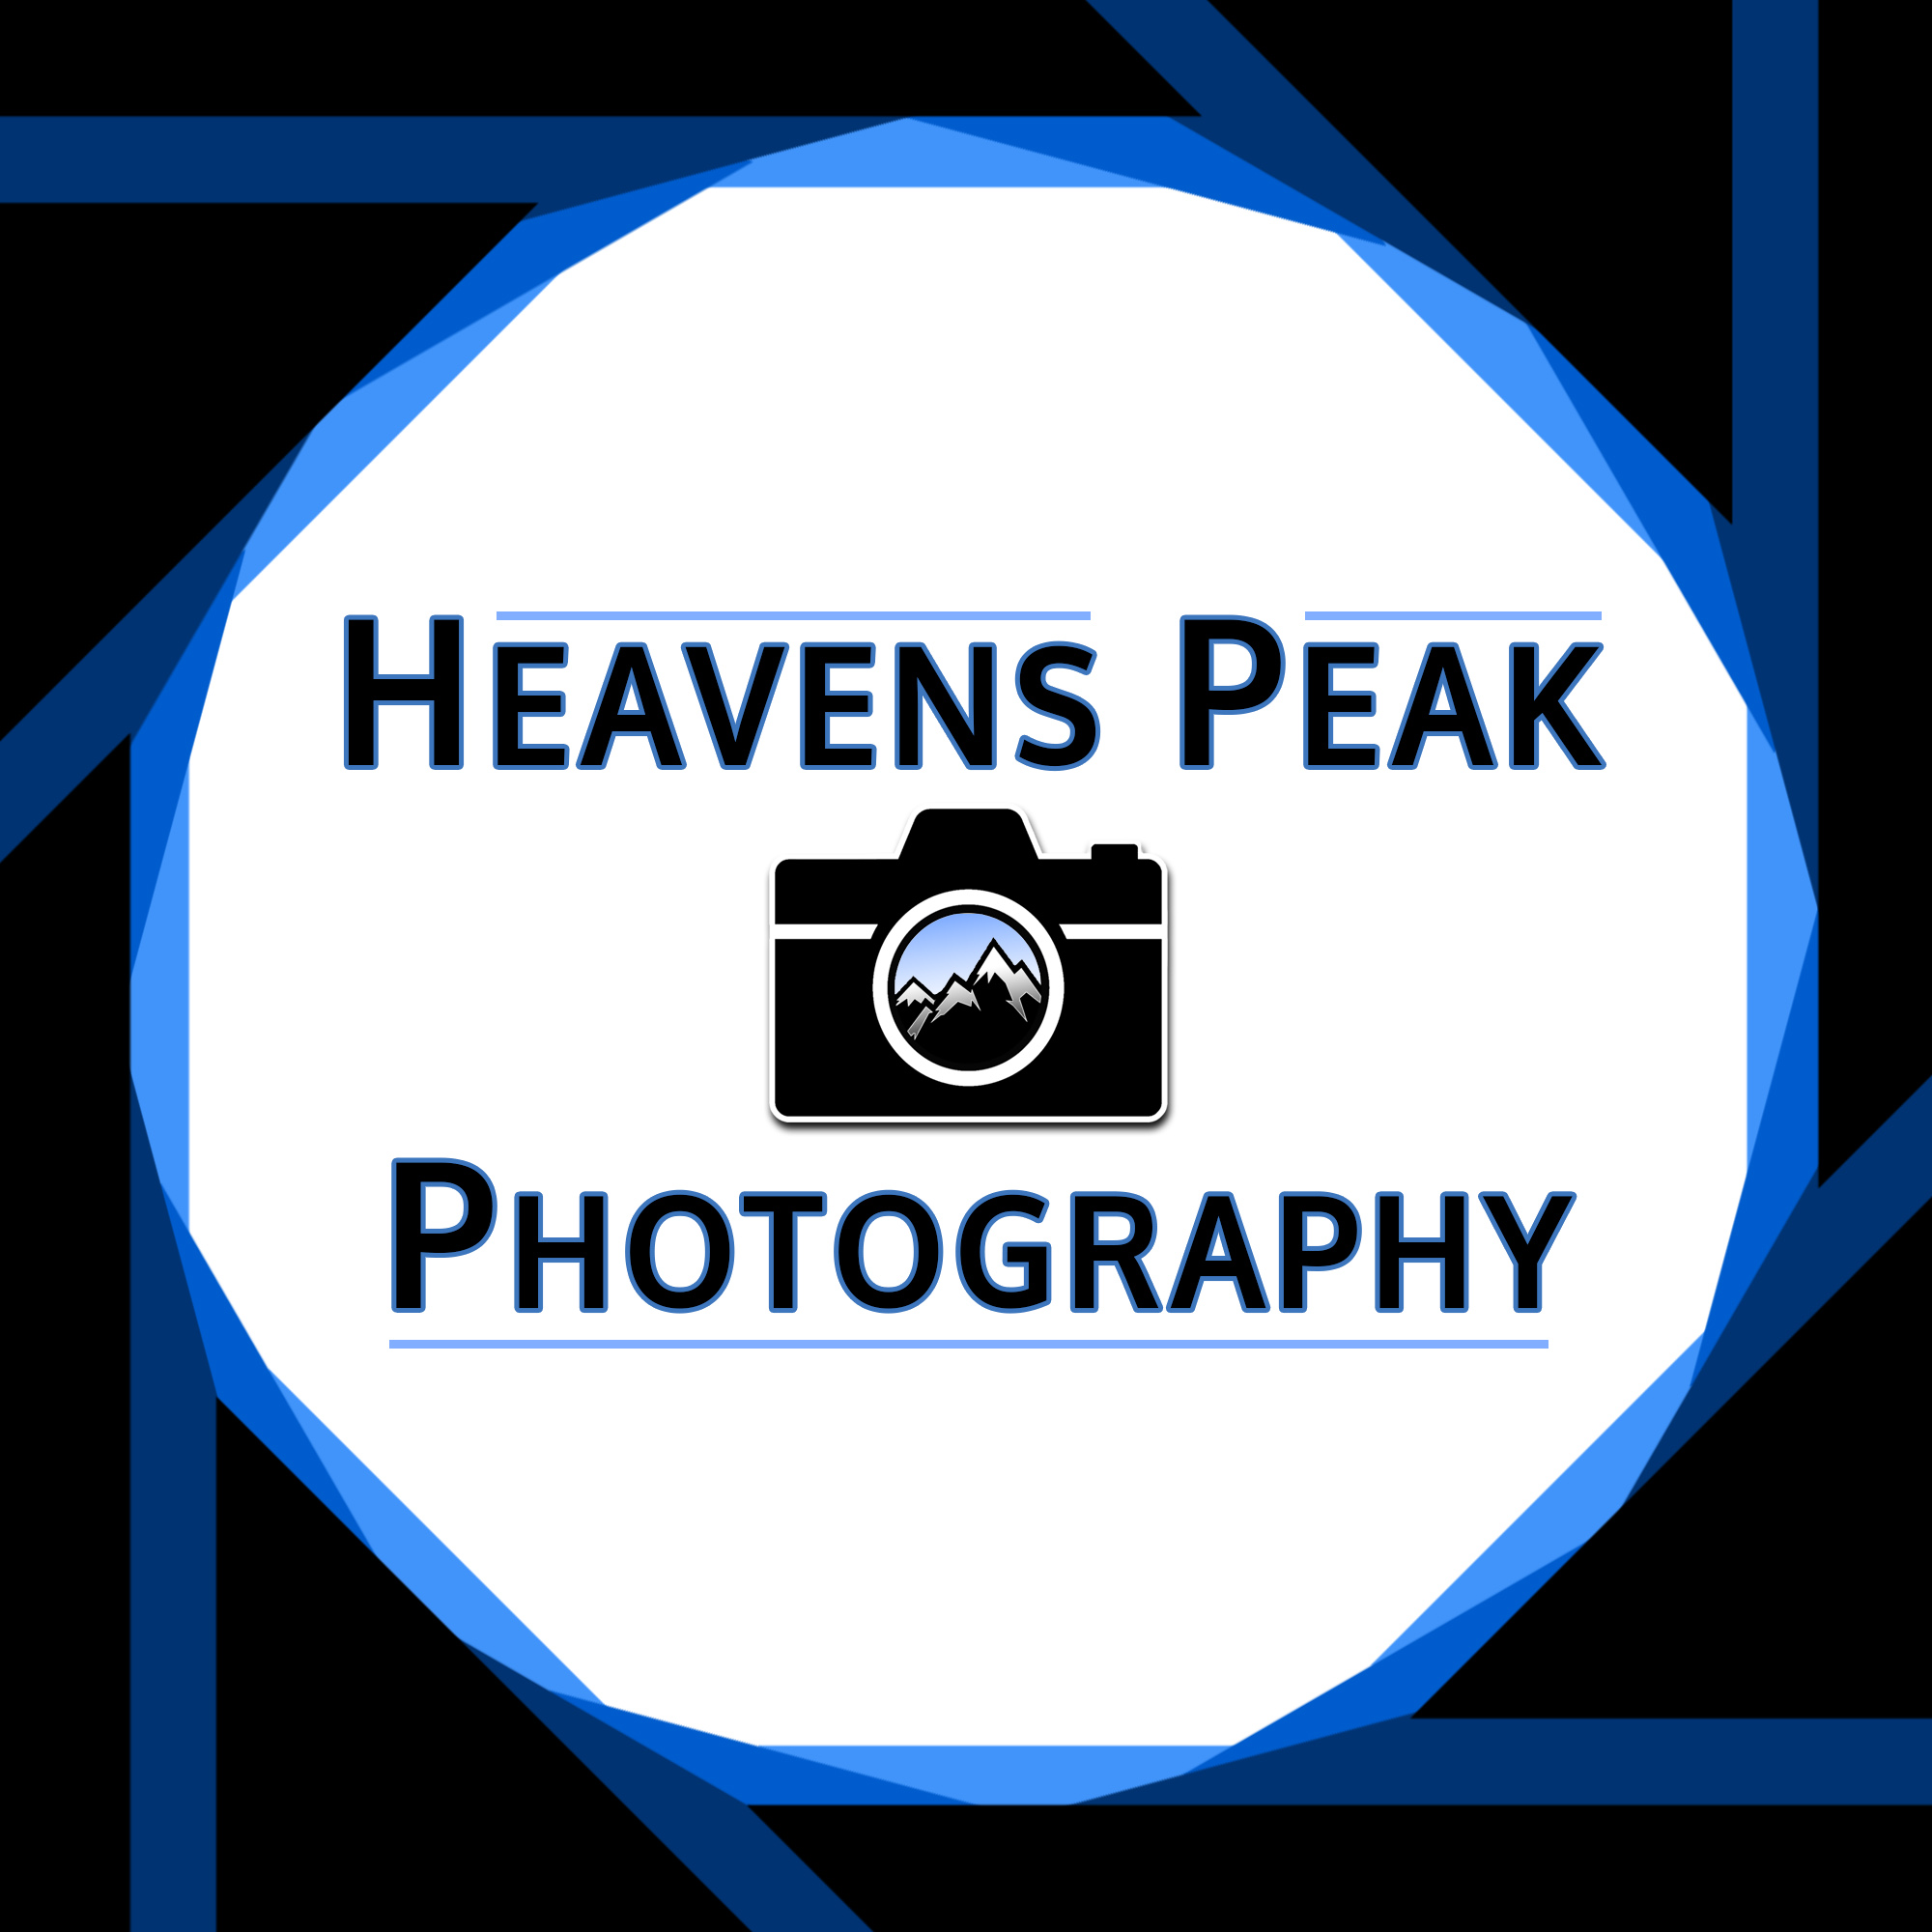 Heavens Peak Photography